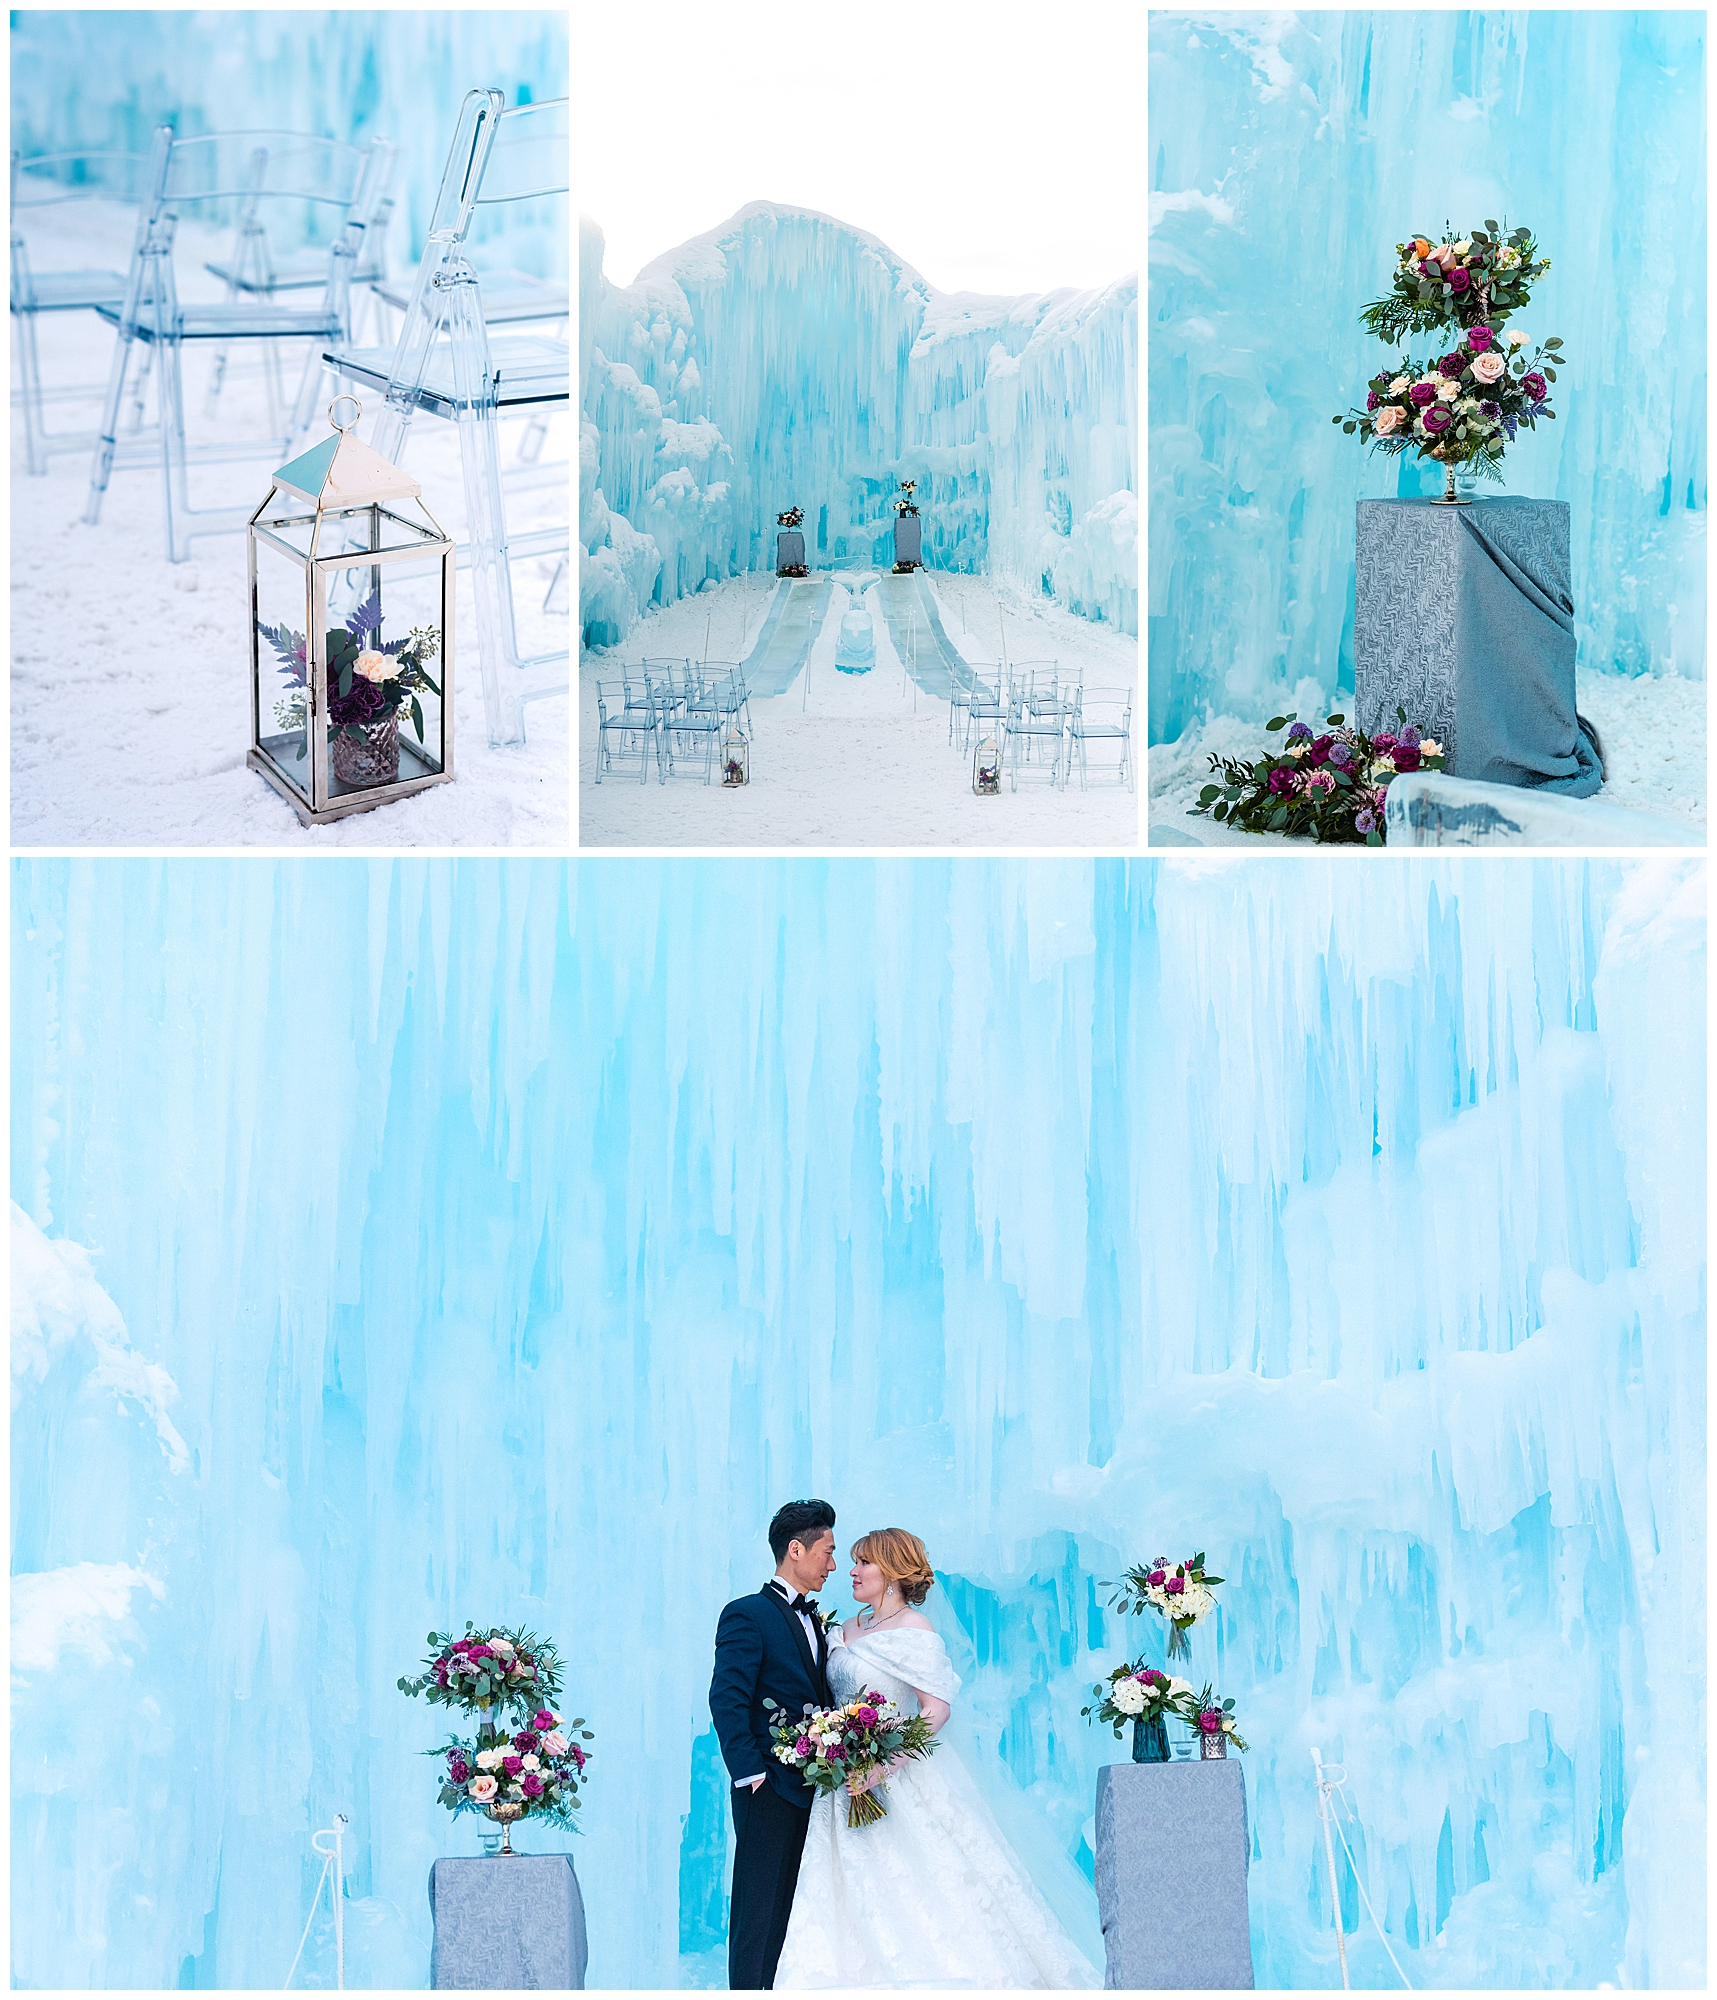 Edmonton Wedding Ice Castle Rhiannon Sarah Photography